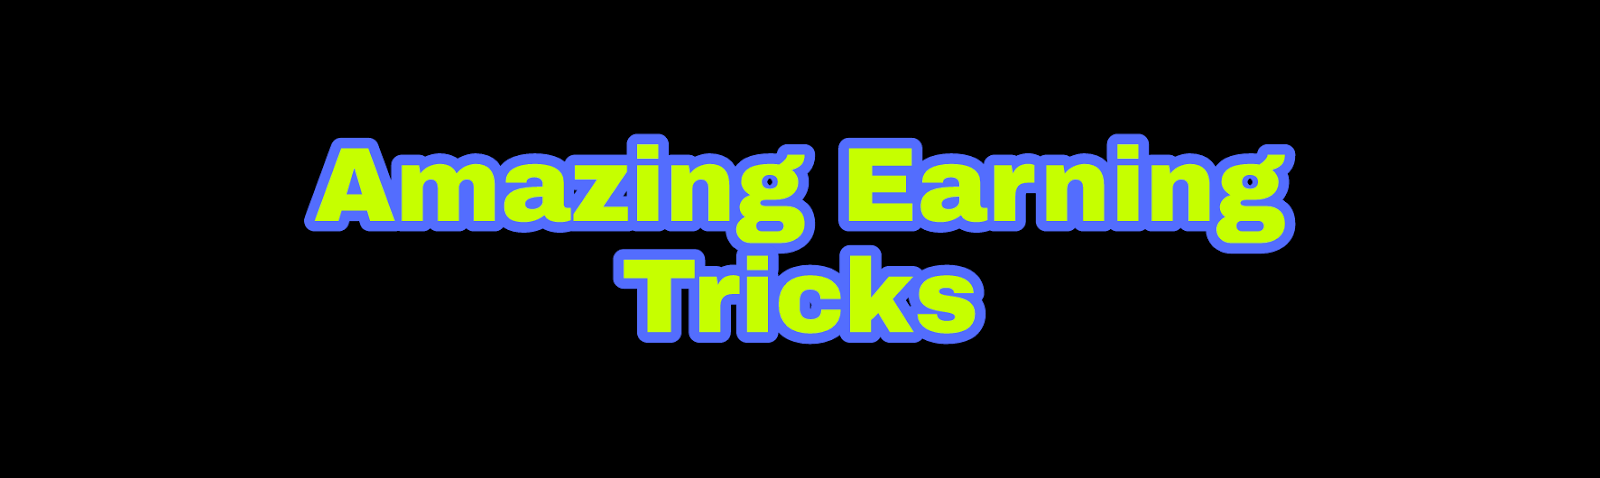 AMAZING EARNING TRICKS | FREE RECHARGE TRICKS,OFFERS,COUPON,EARN FREE PAYTM,PAYTM LOOT